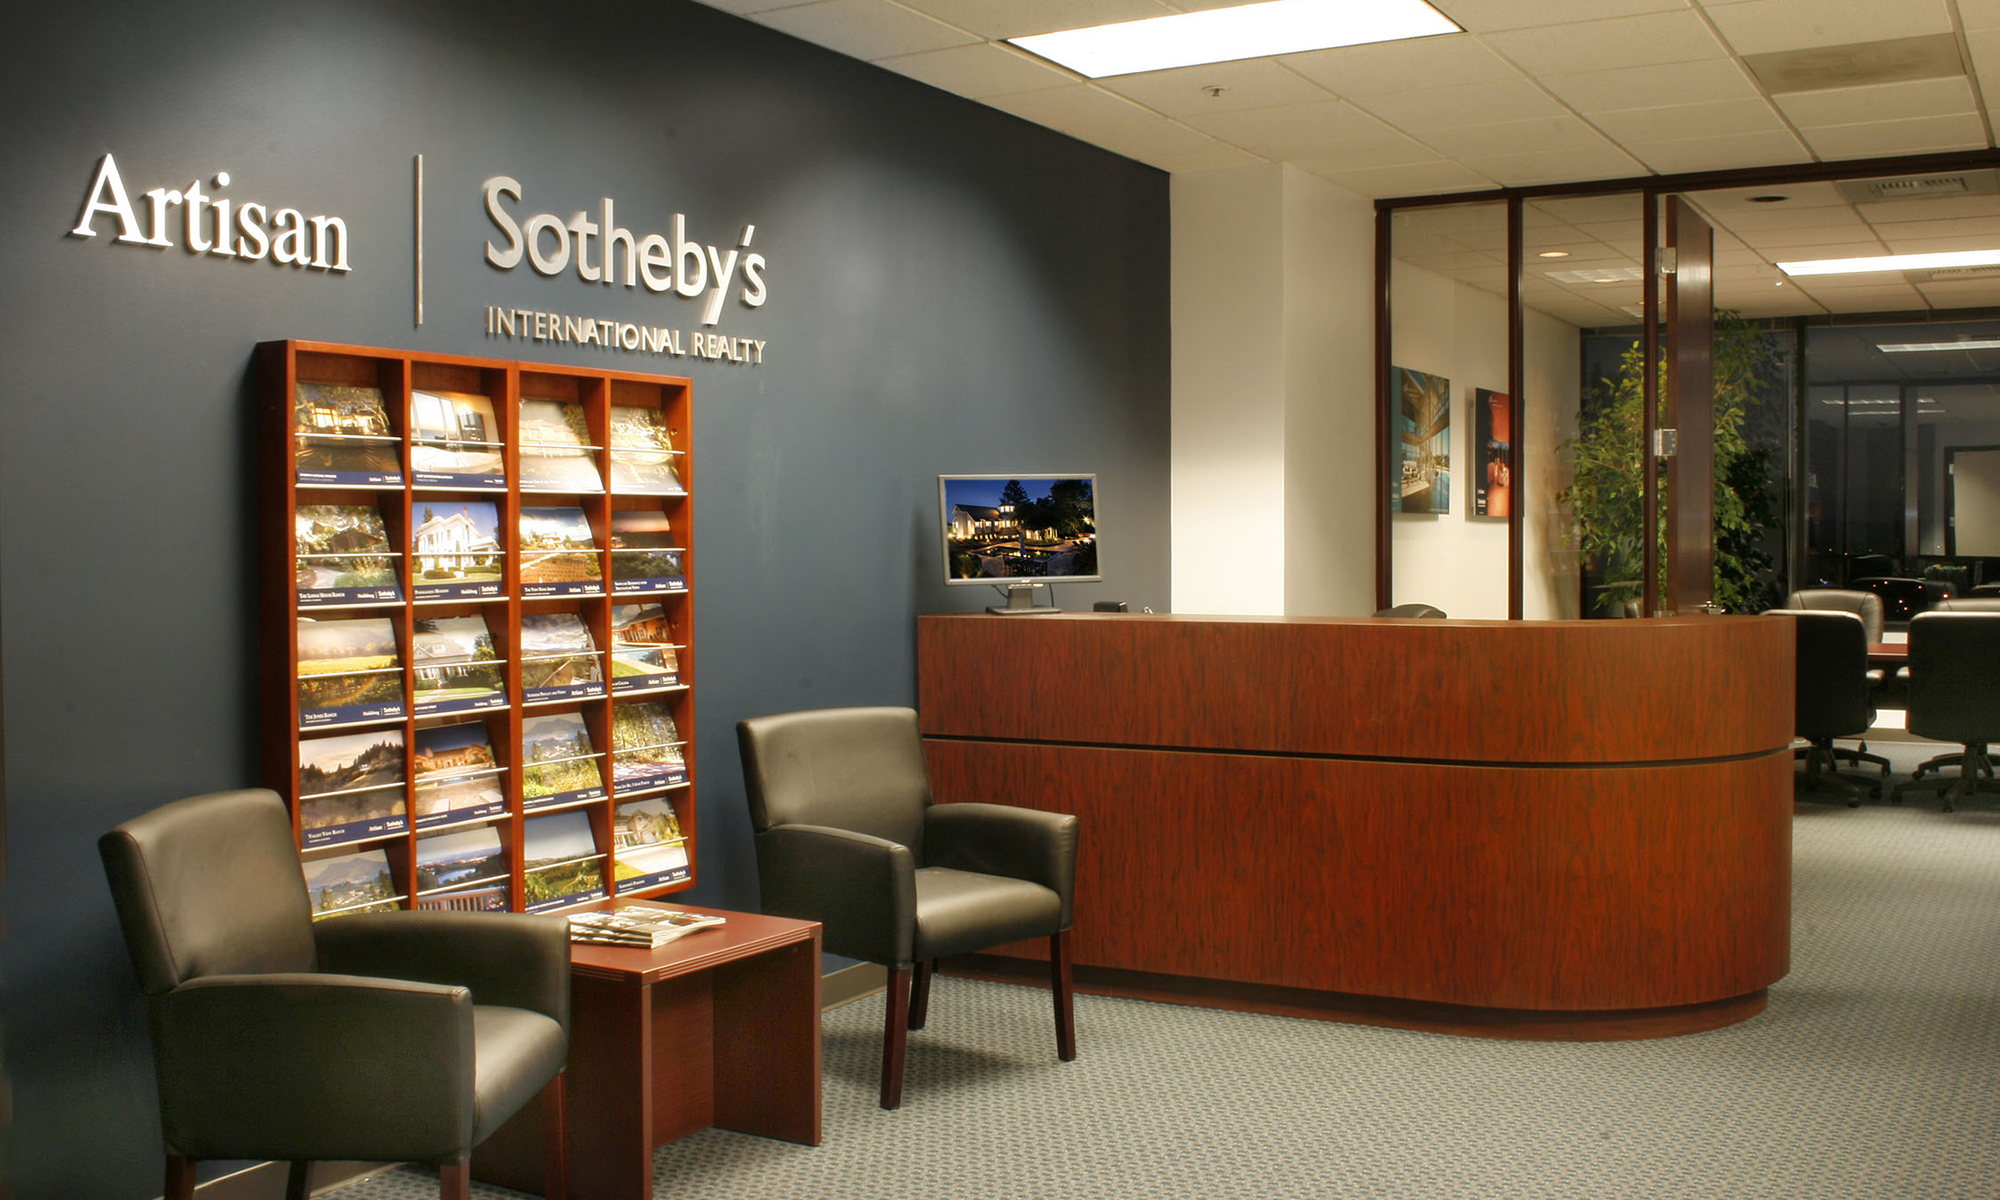 Office Artisan Sotheby's International Realty Photo